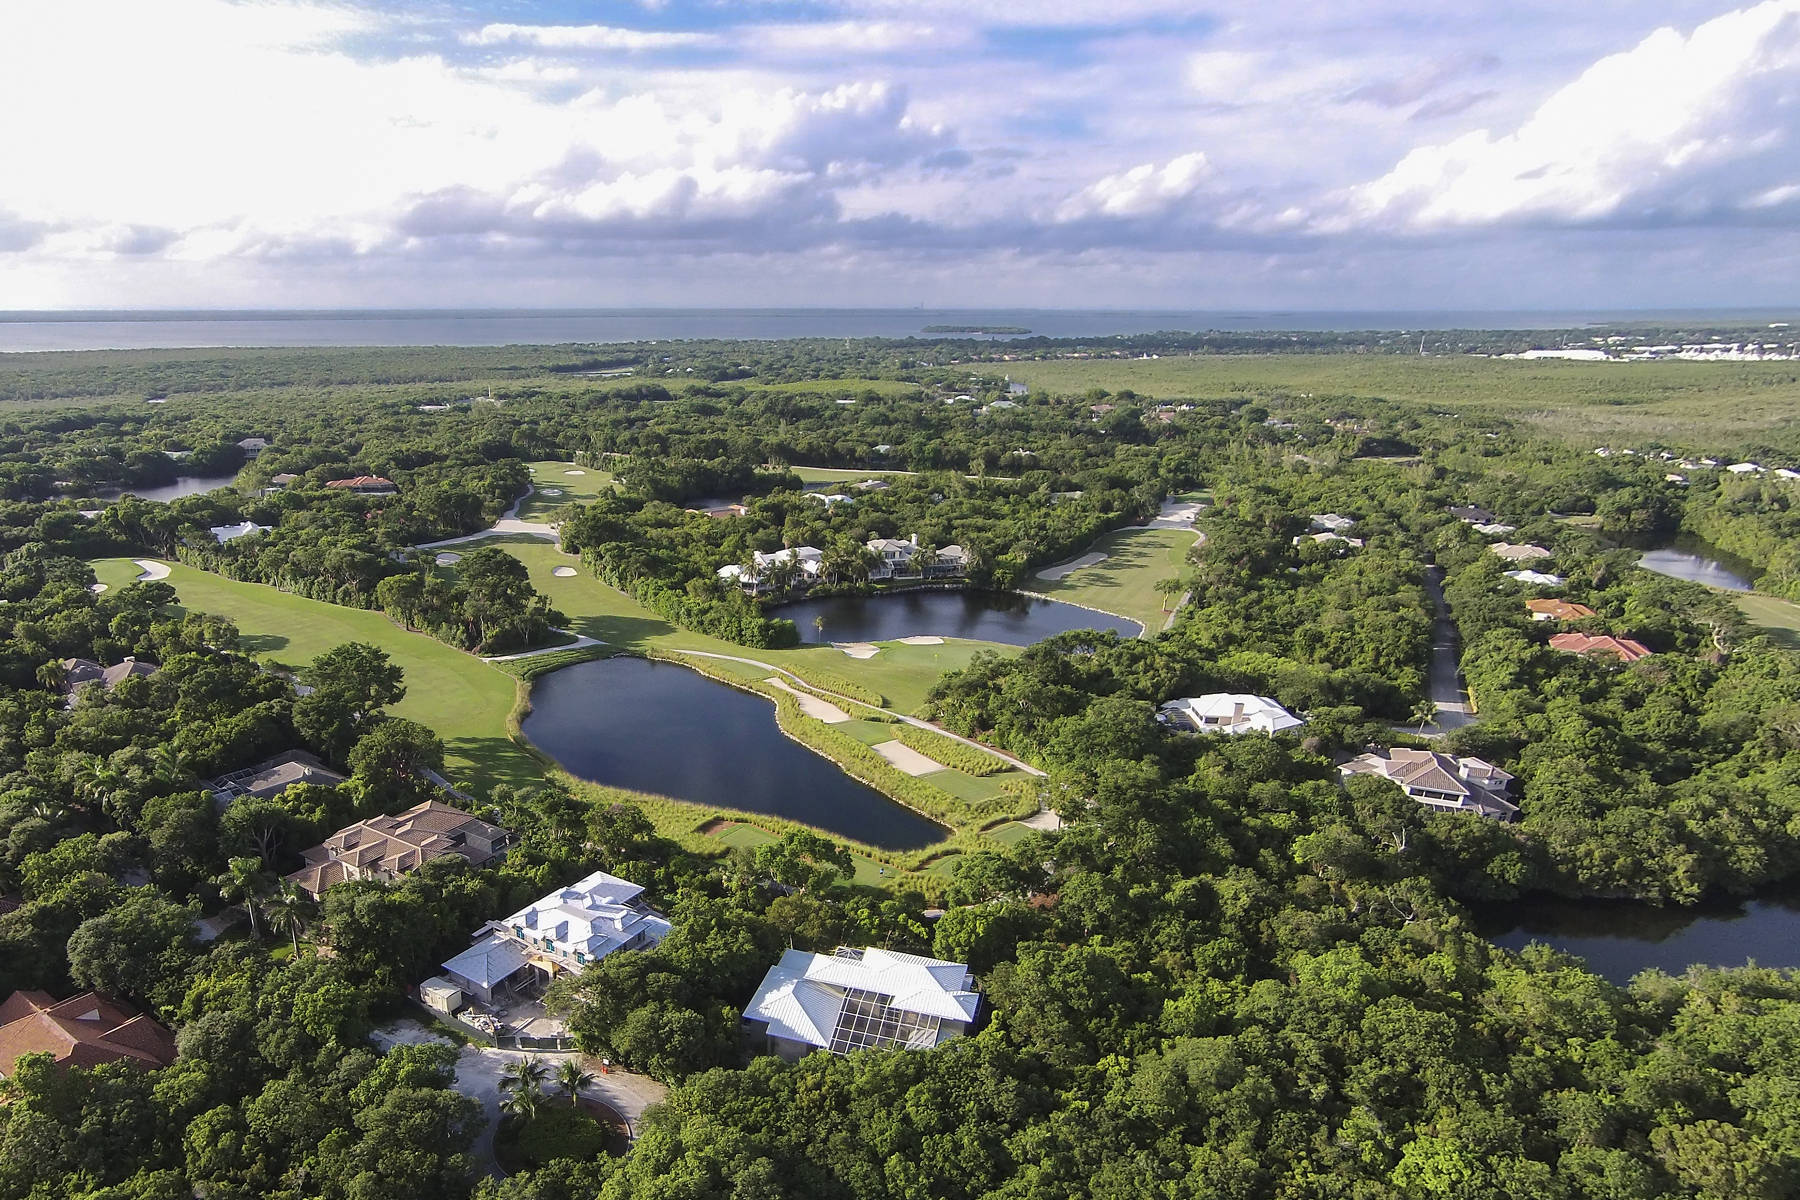 Single Family Home for Sale at Panoramic Golf and Lake Views at Ocean Reef 437 South Harbor Drive Key Largo, Florida, 33037 United States